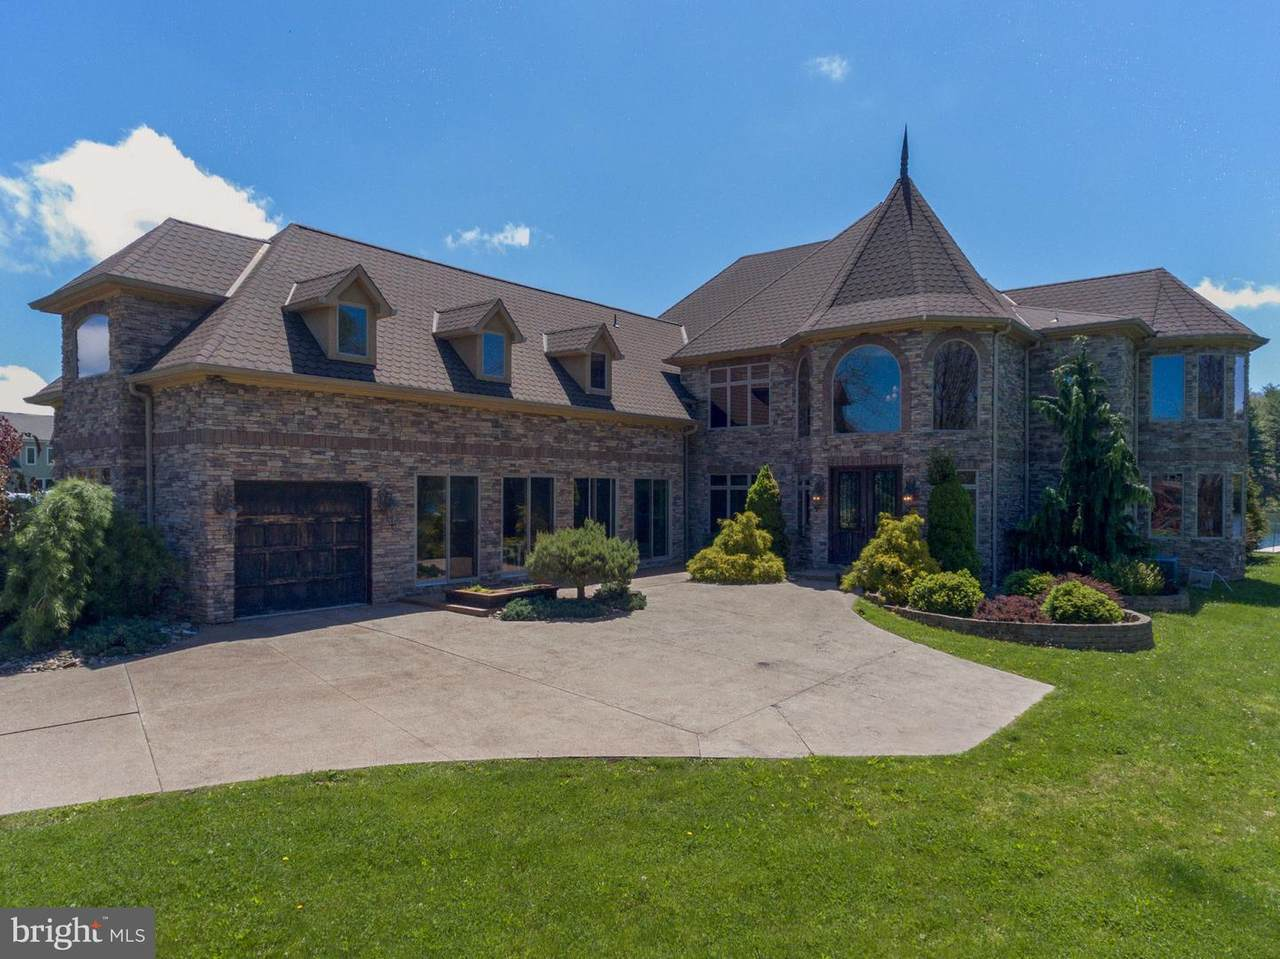 75 Lakefront Links Drive - Photo 1